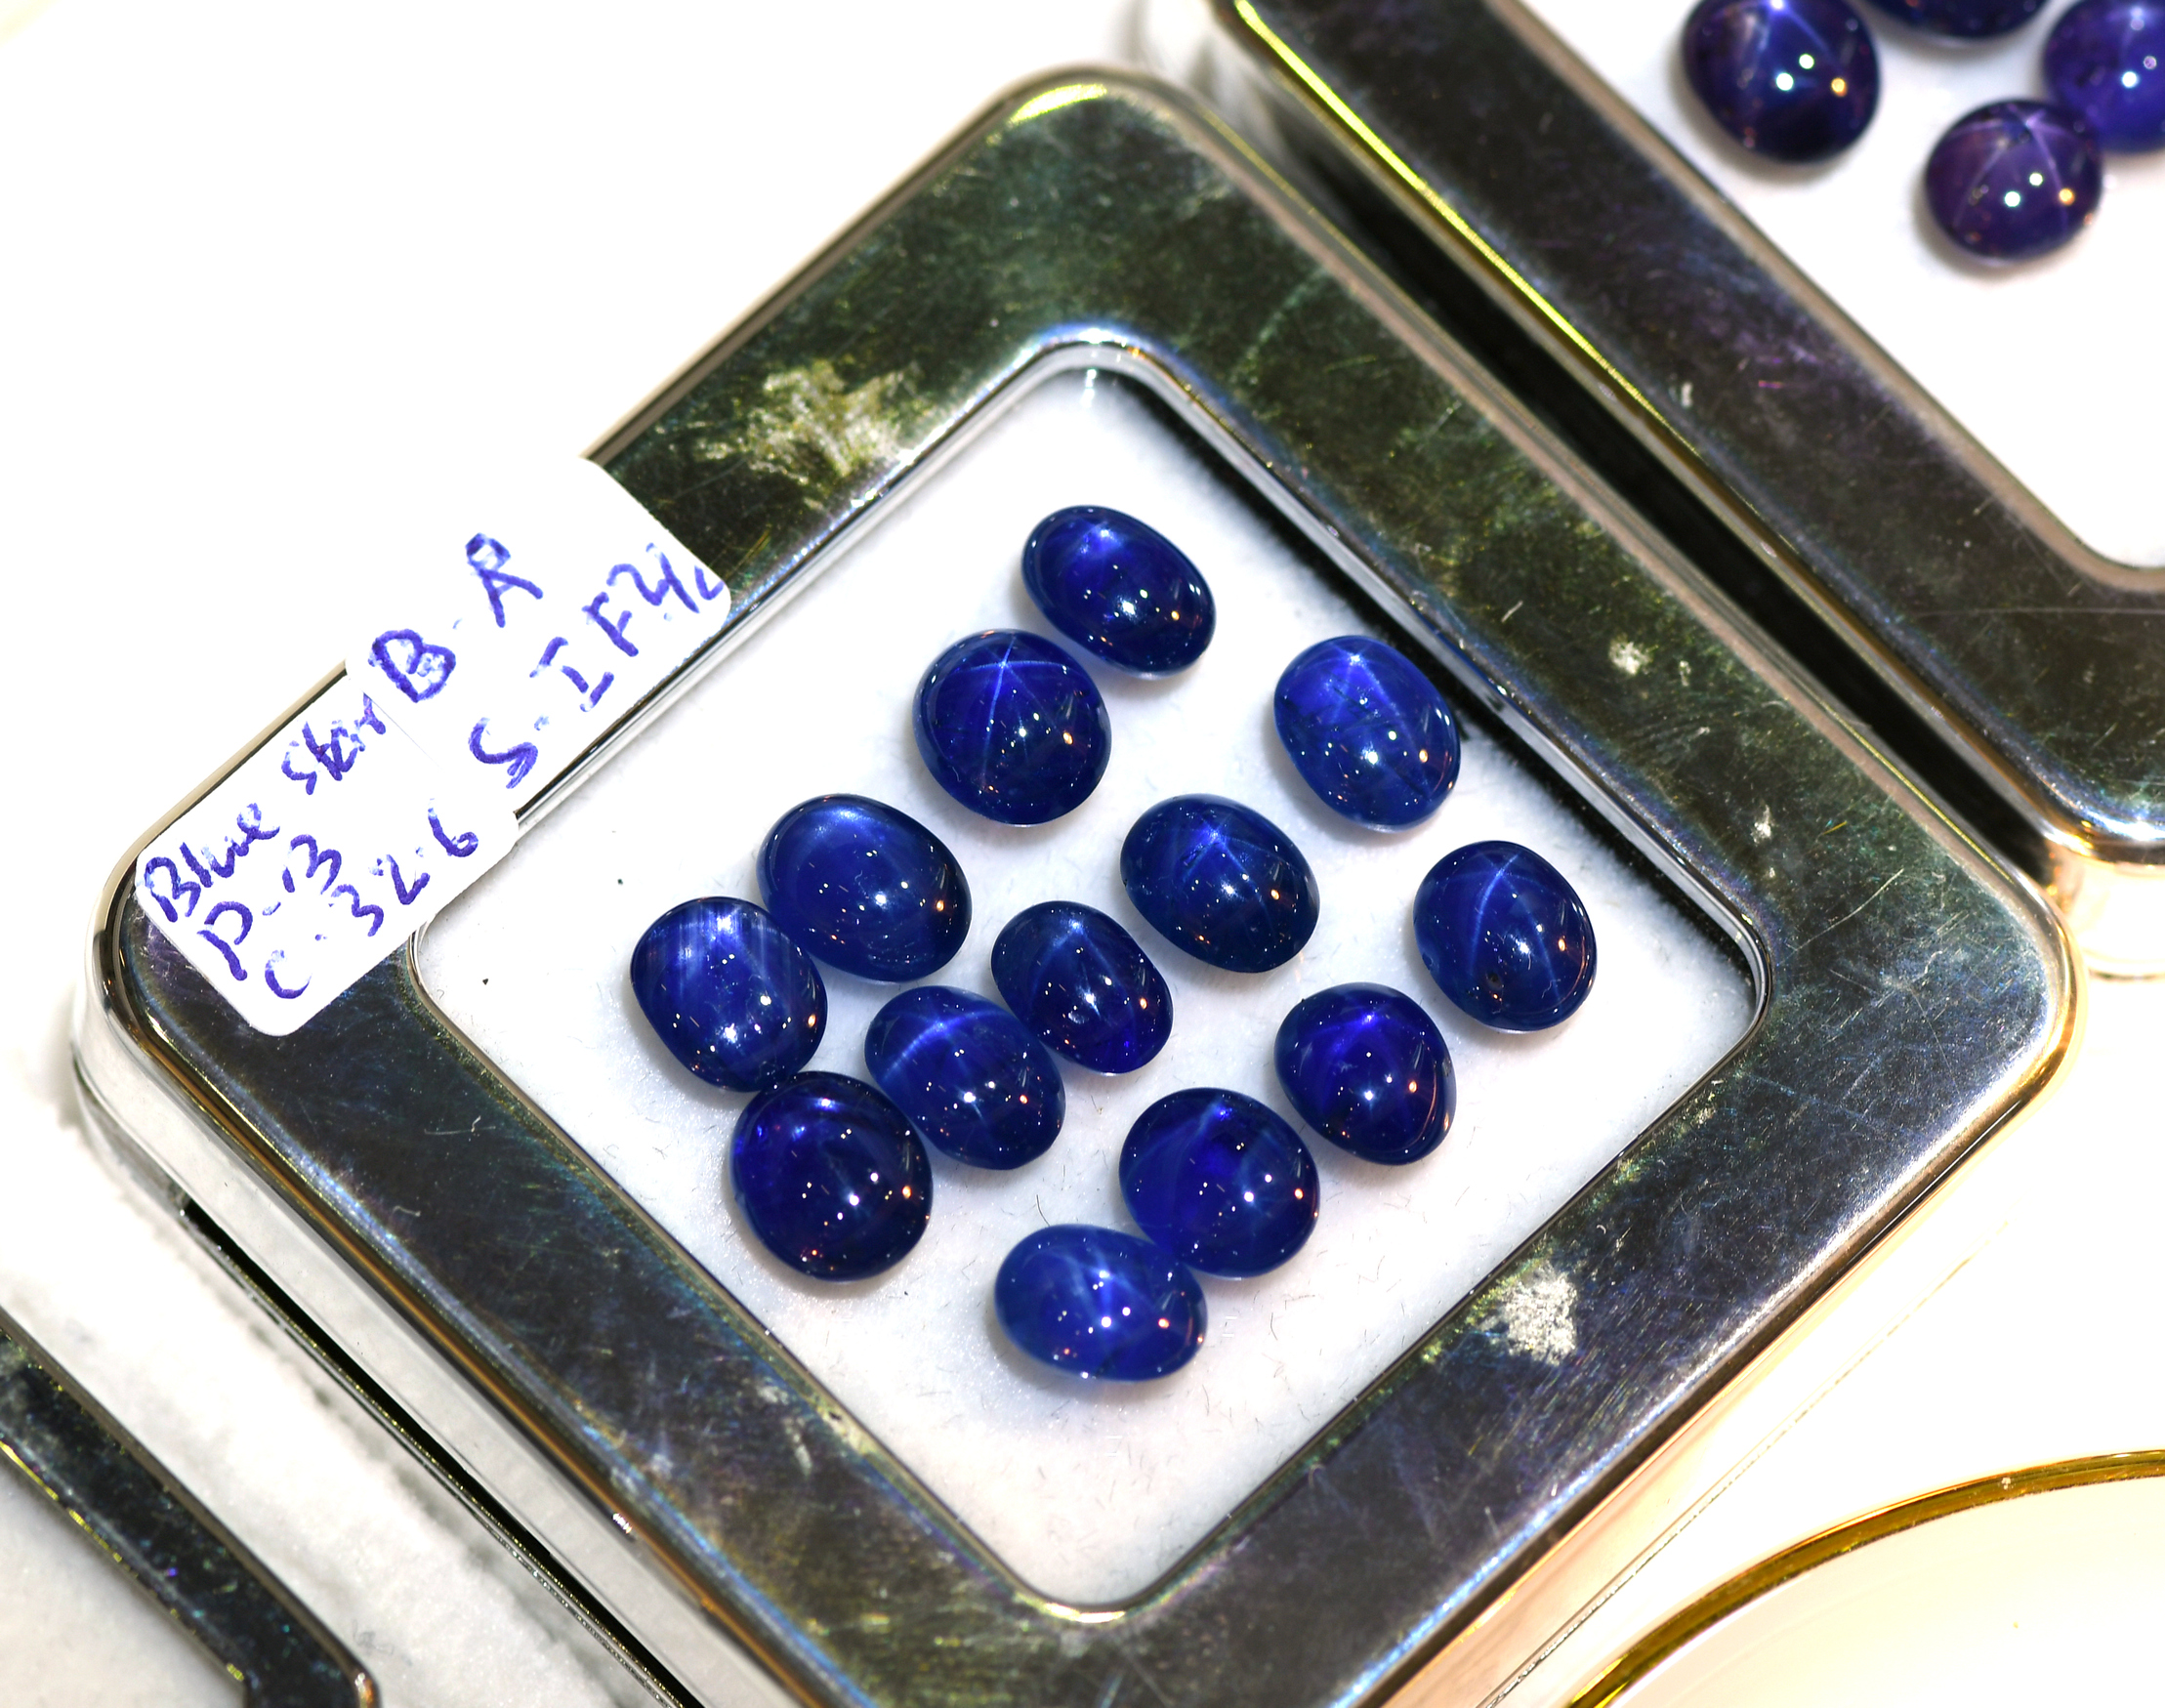 Lot of Unheated Blue Star Sapphires. Absolutely love the colour!